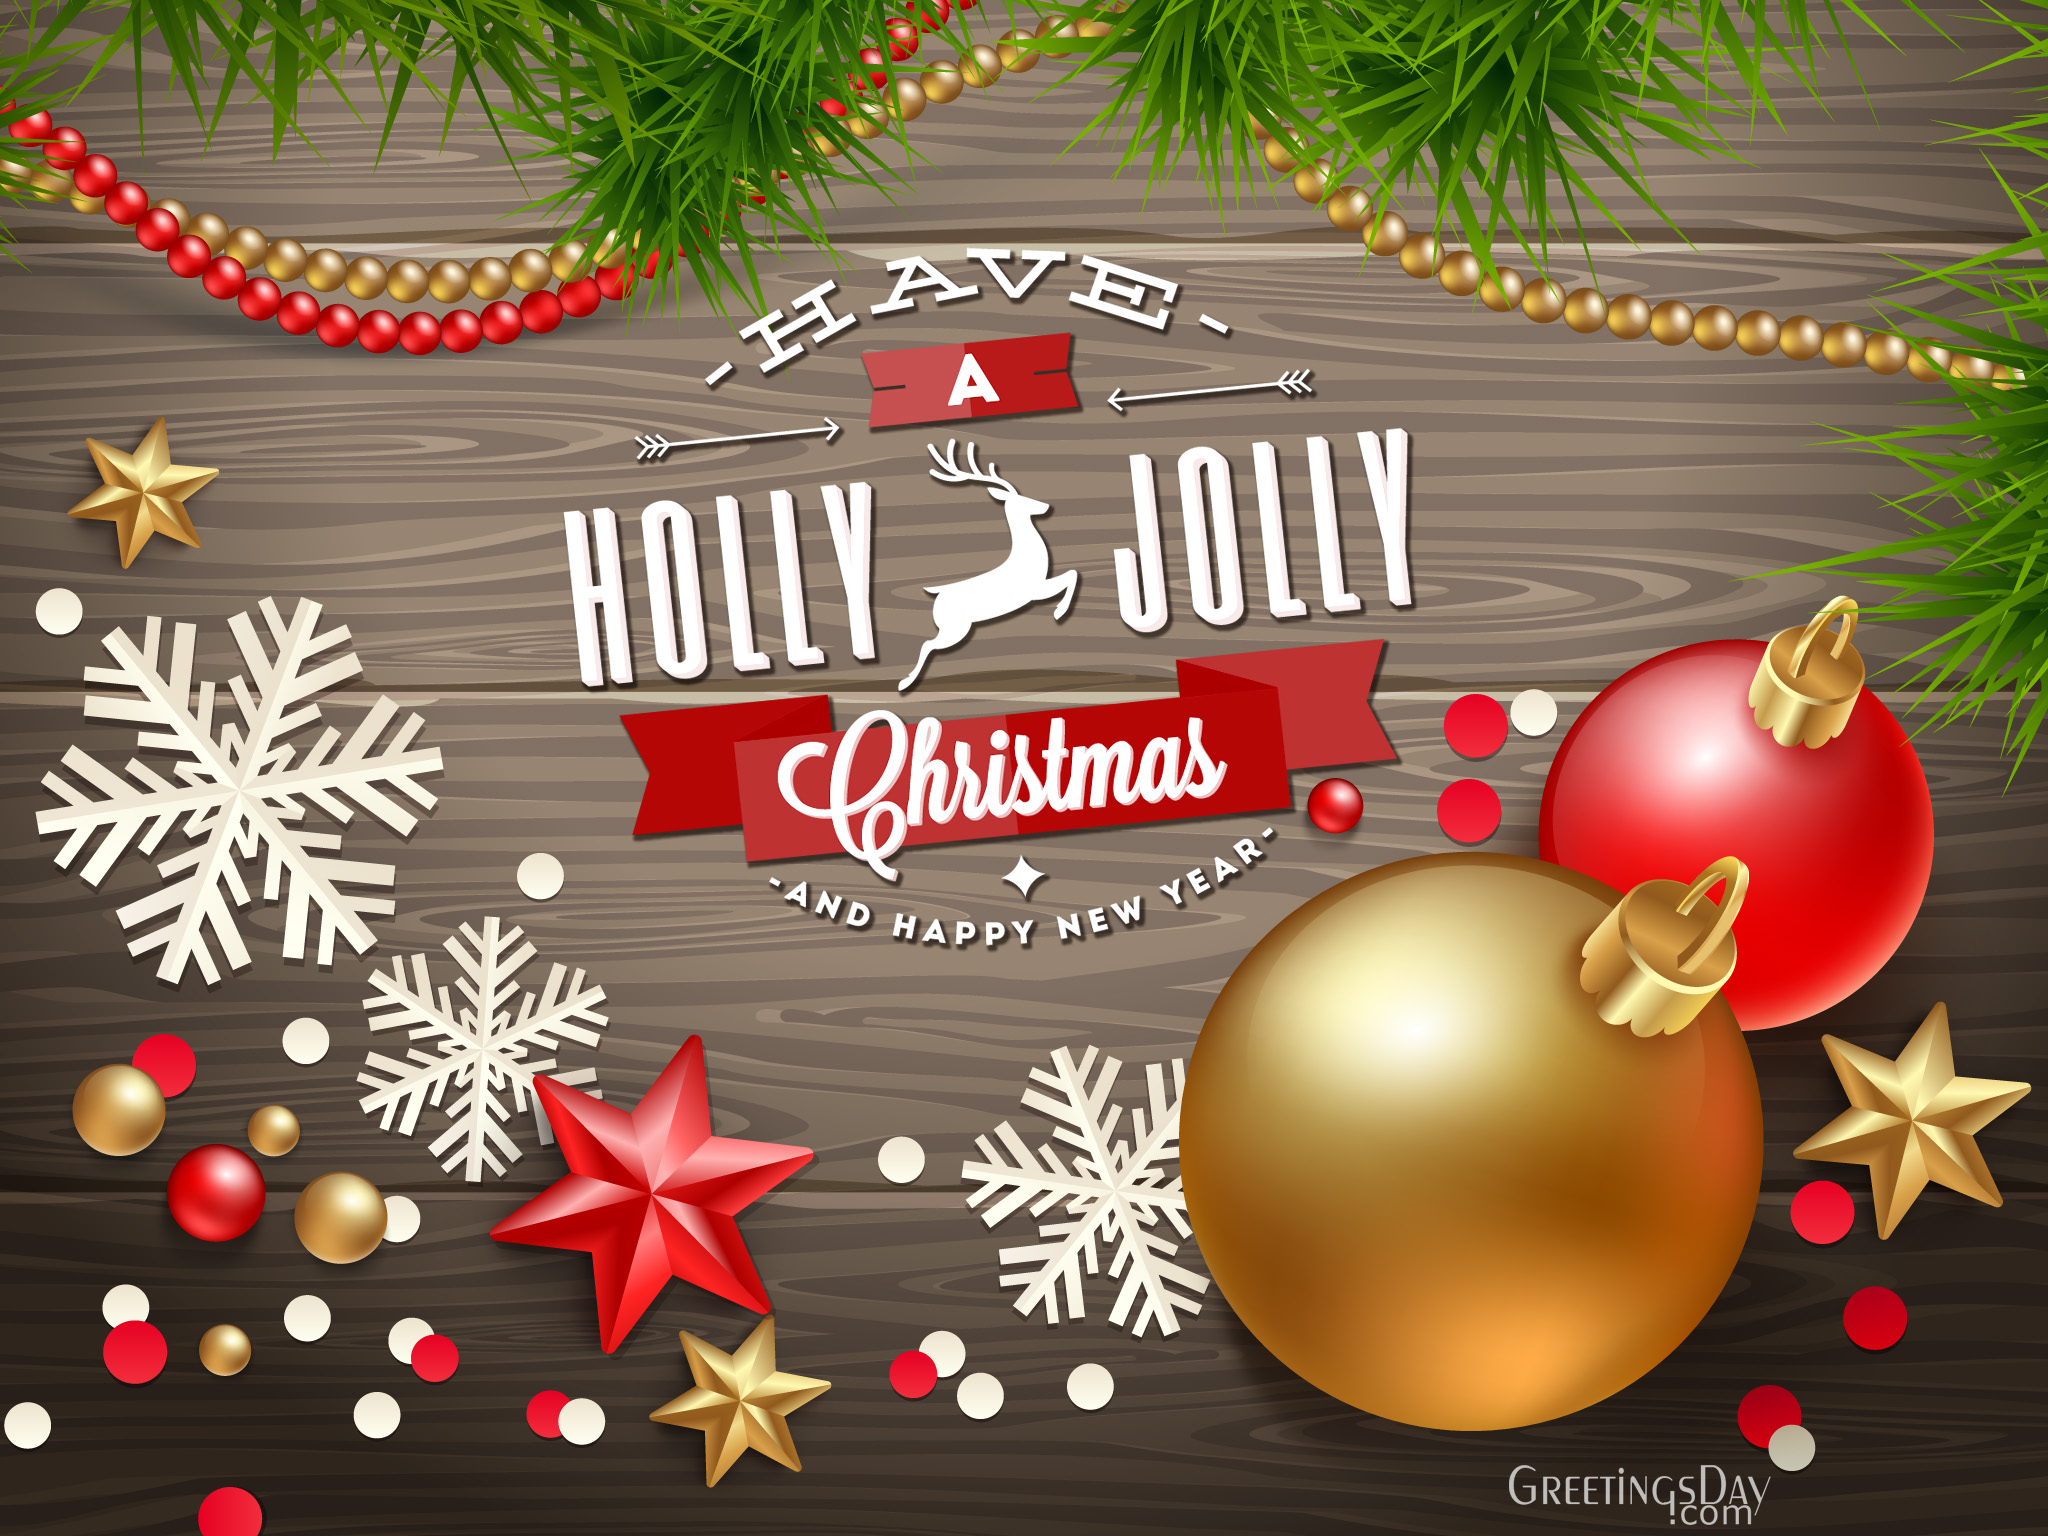 30 free christmas greeting cards for family and friends merry may your christmas be merry and your new year filled with good health and glad times enjoy your christmas with family and friends christmas card kristyandbryce Image collections